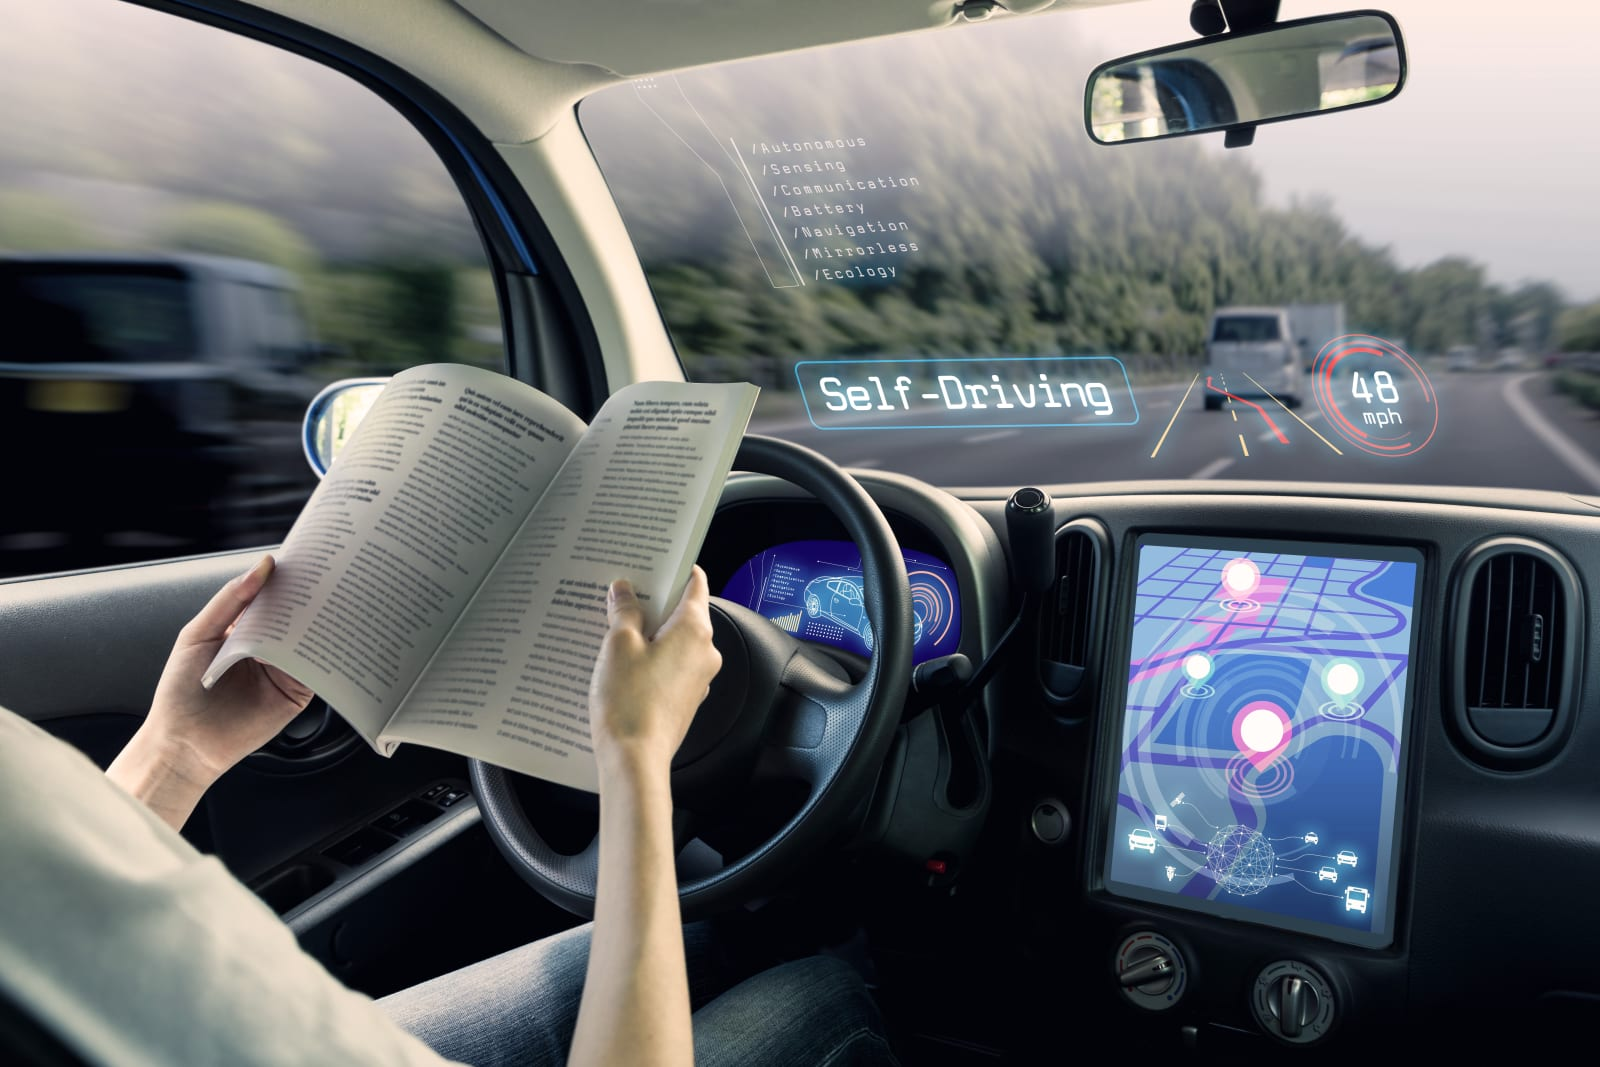 cockpit of autonomous car. a vehicle running self driving mode and a woman driver reading book.